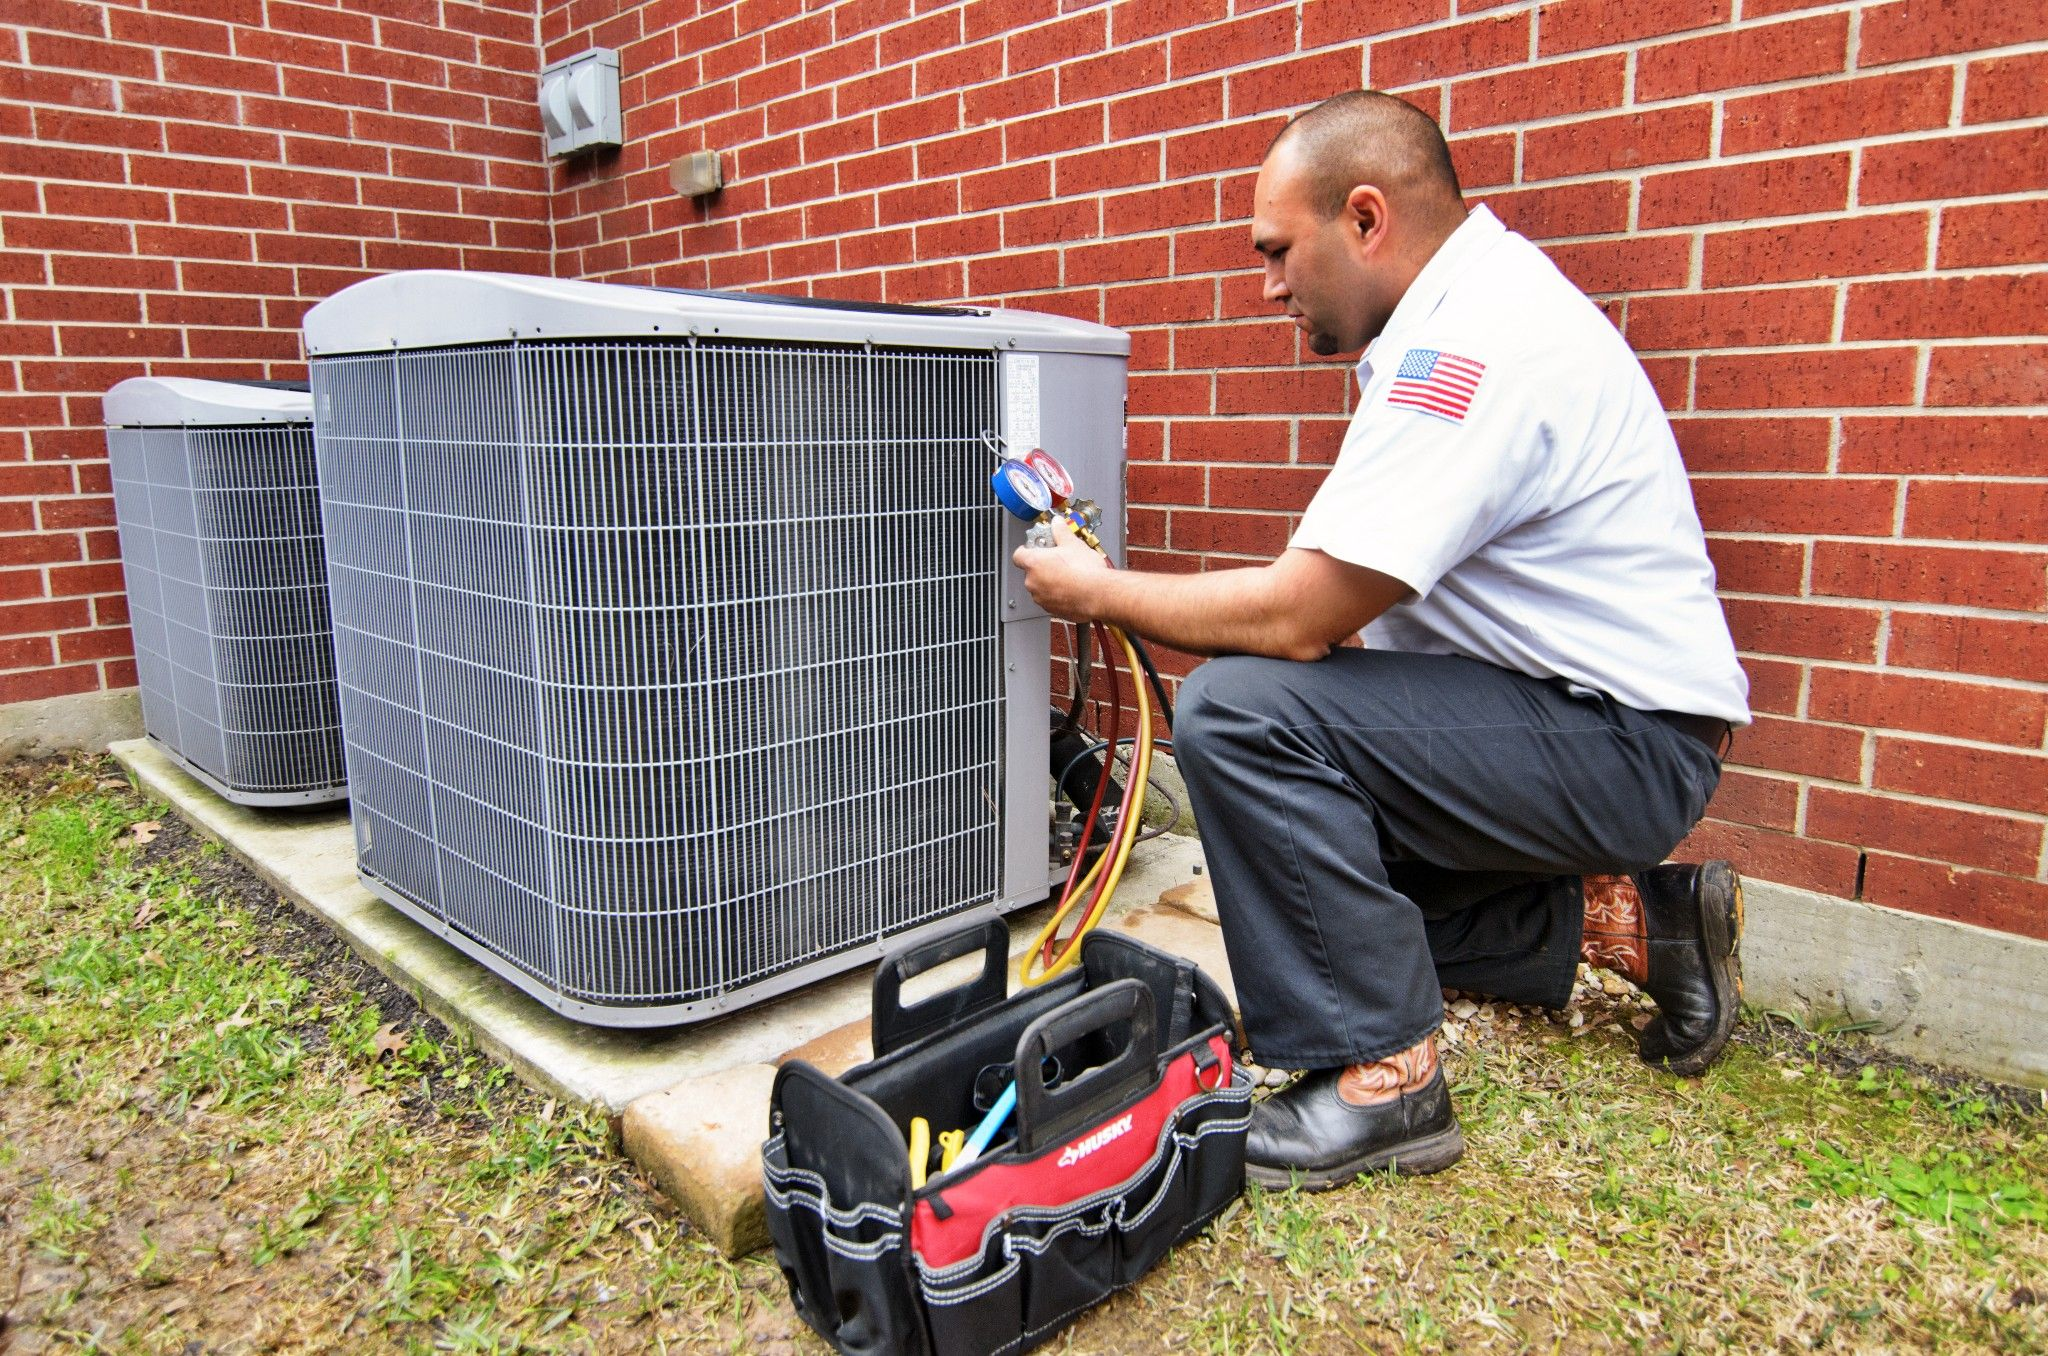 In buildings such as hotels, HVAC systems are normally